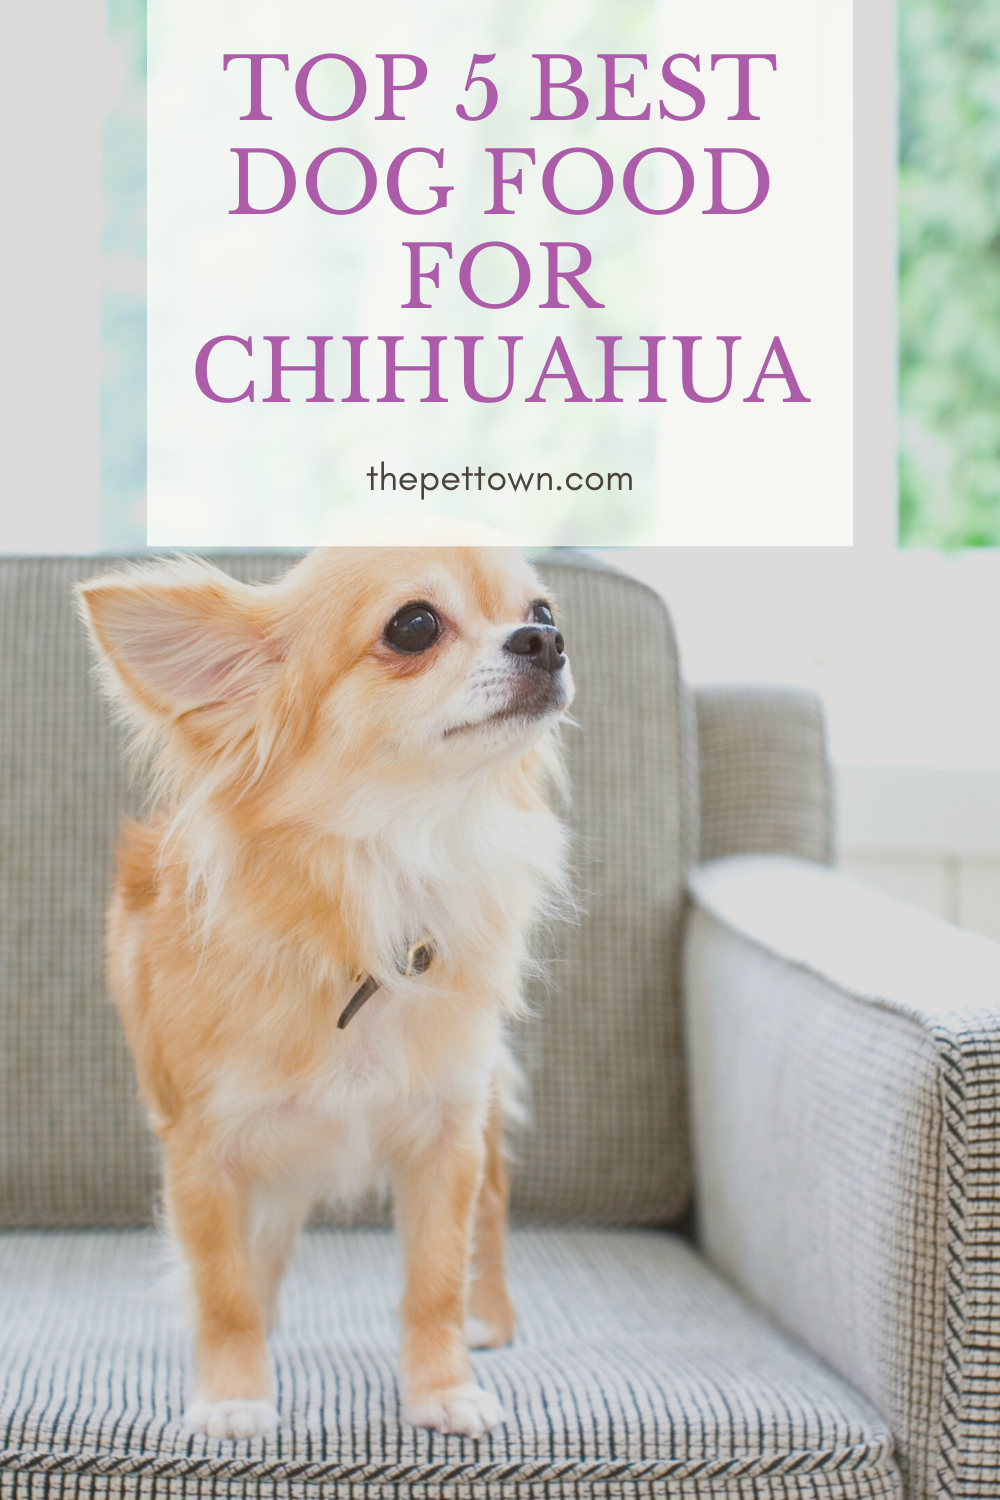 Top 5 Best Dog Food For Chihuahua Best Dog Food Best Dogs Dogs